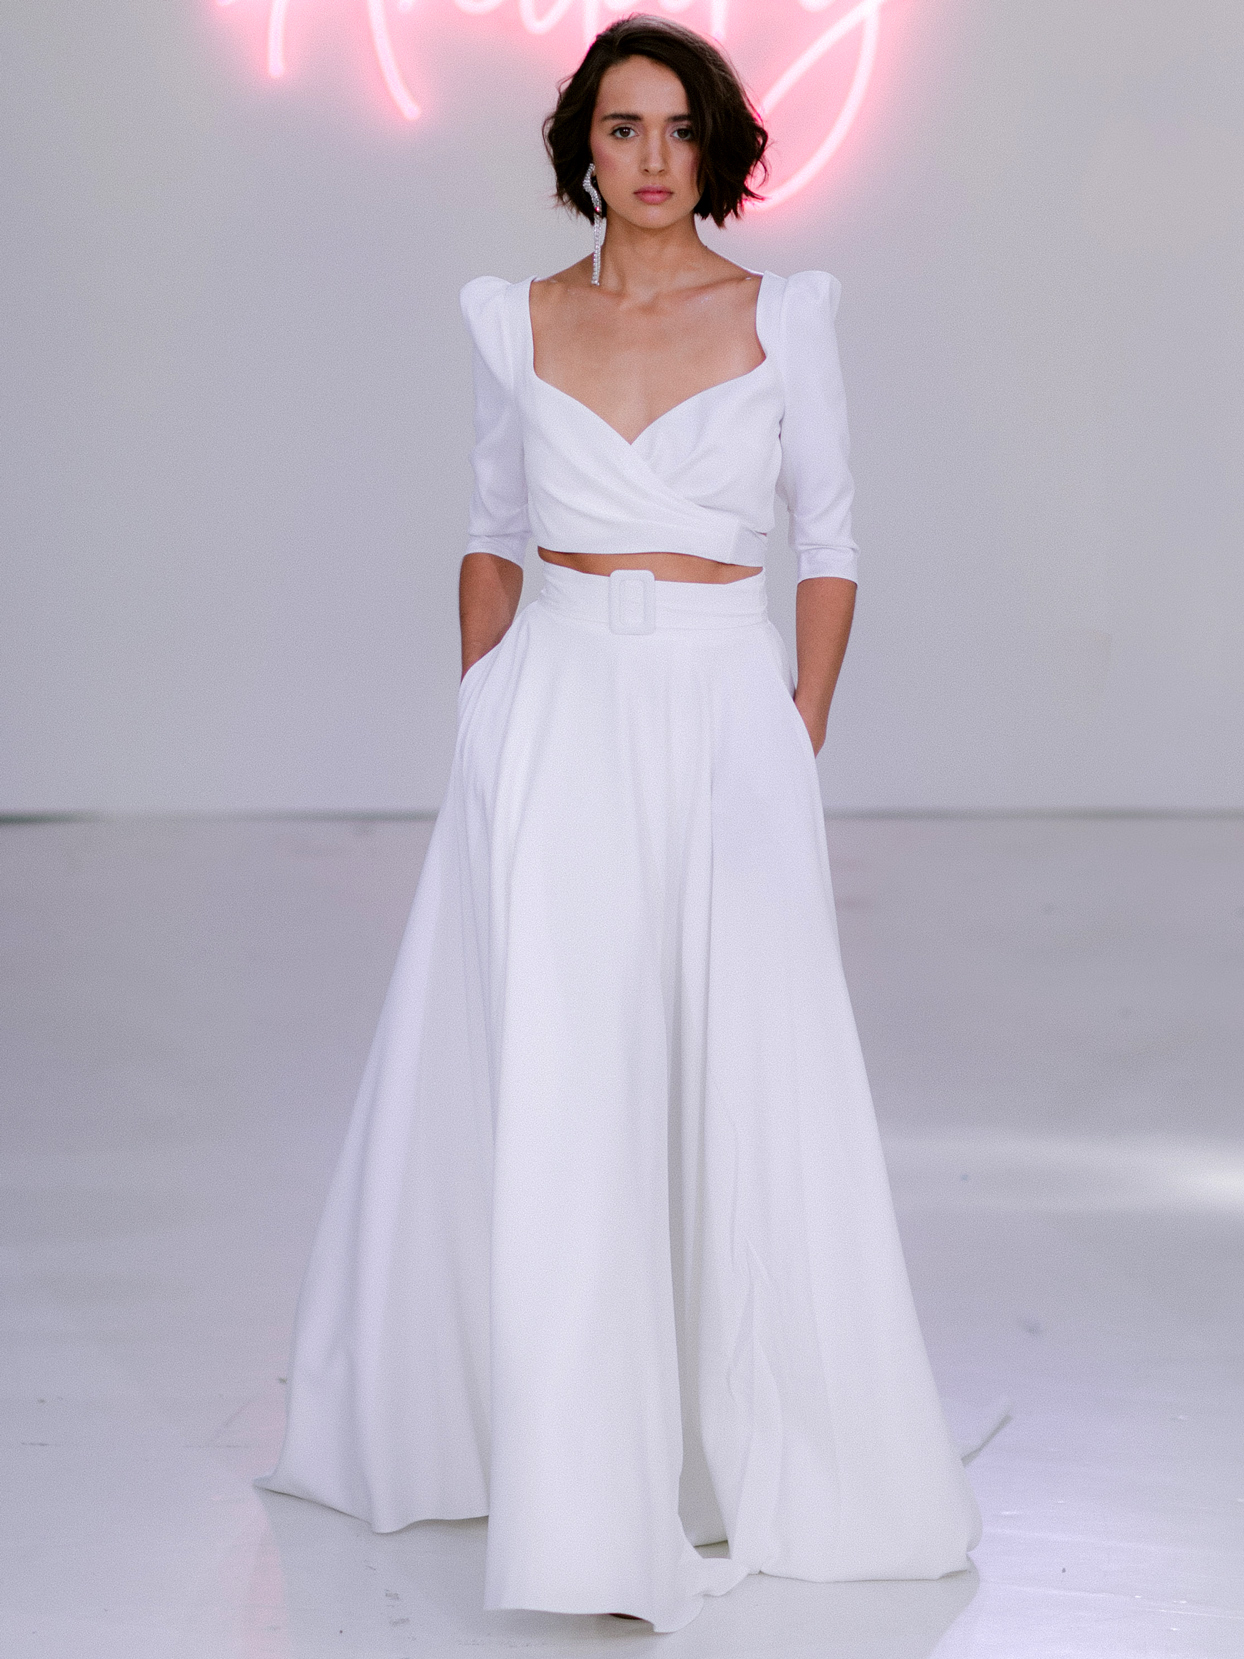 Rime Arodaky X The Mews Bridal two piece belt wedding dress fall 2020